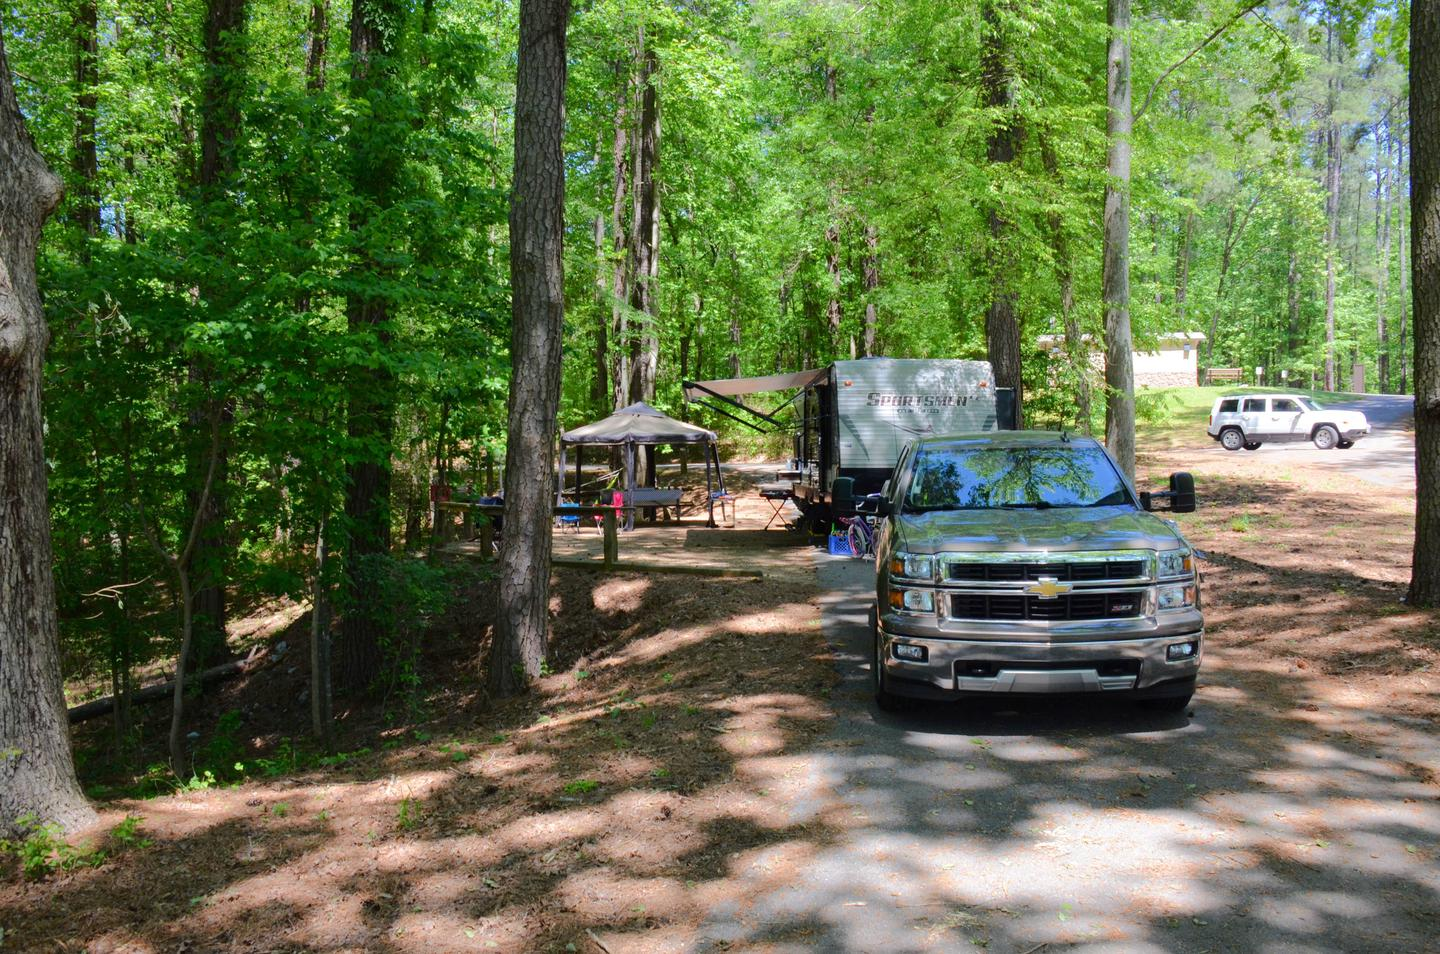 Pull-thru exit, awning-side clearance.McKinney Campground, campsite 120.